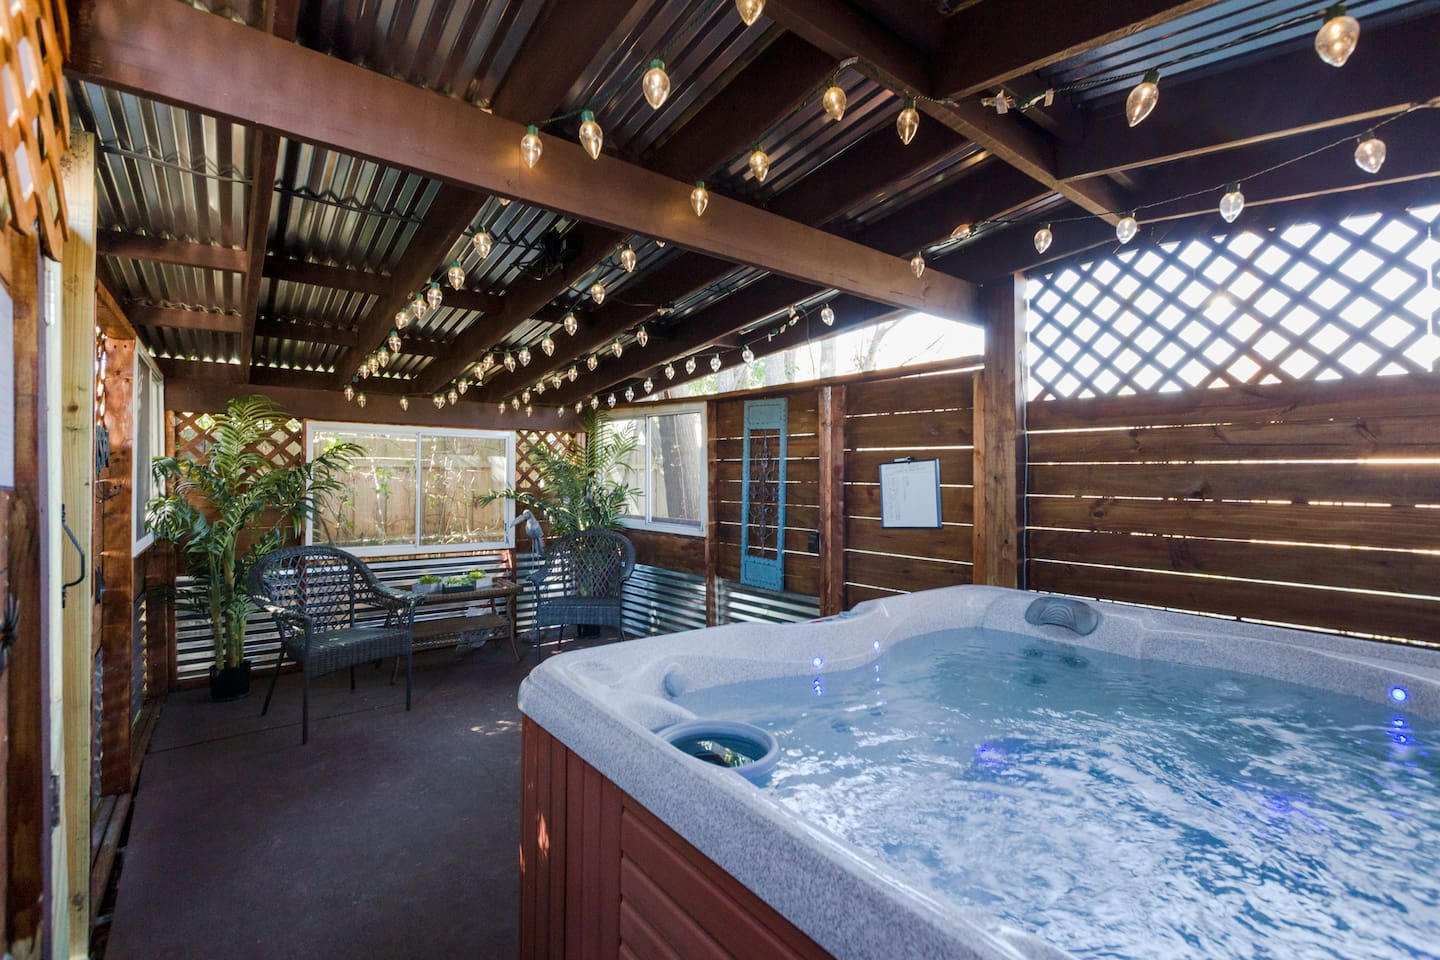 Wilmington's 'The Great Escape' with Hot Tub!